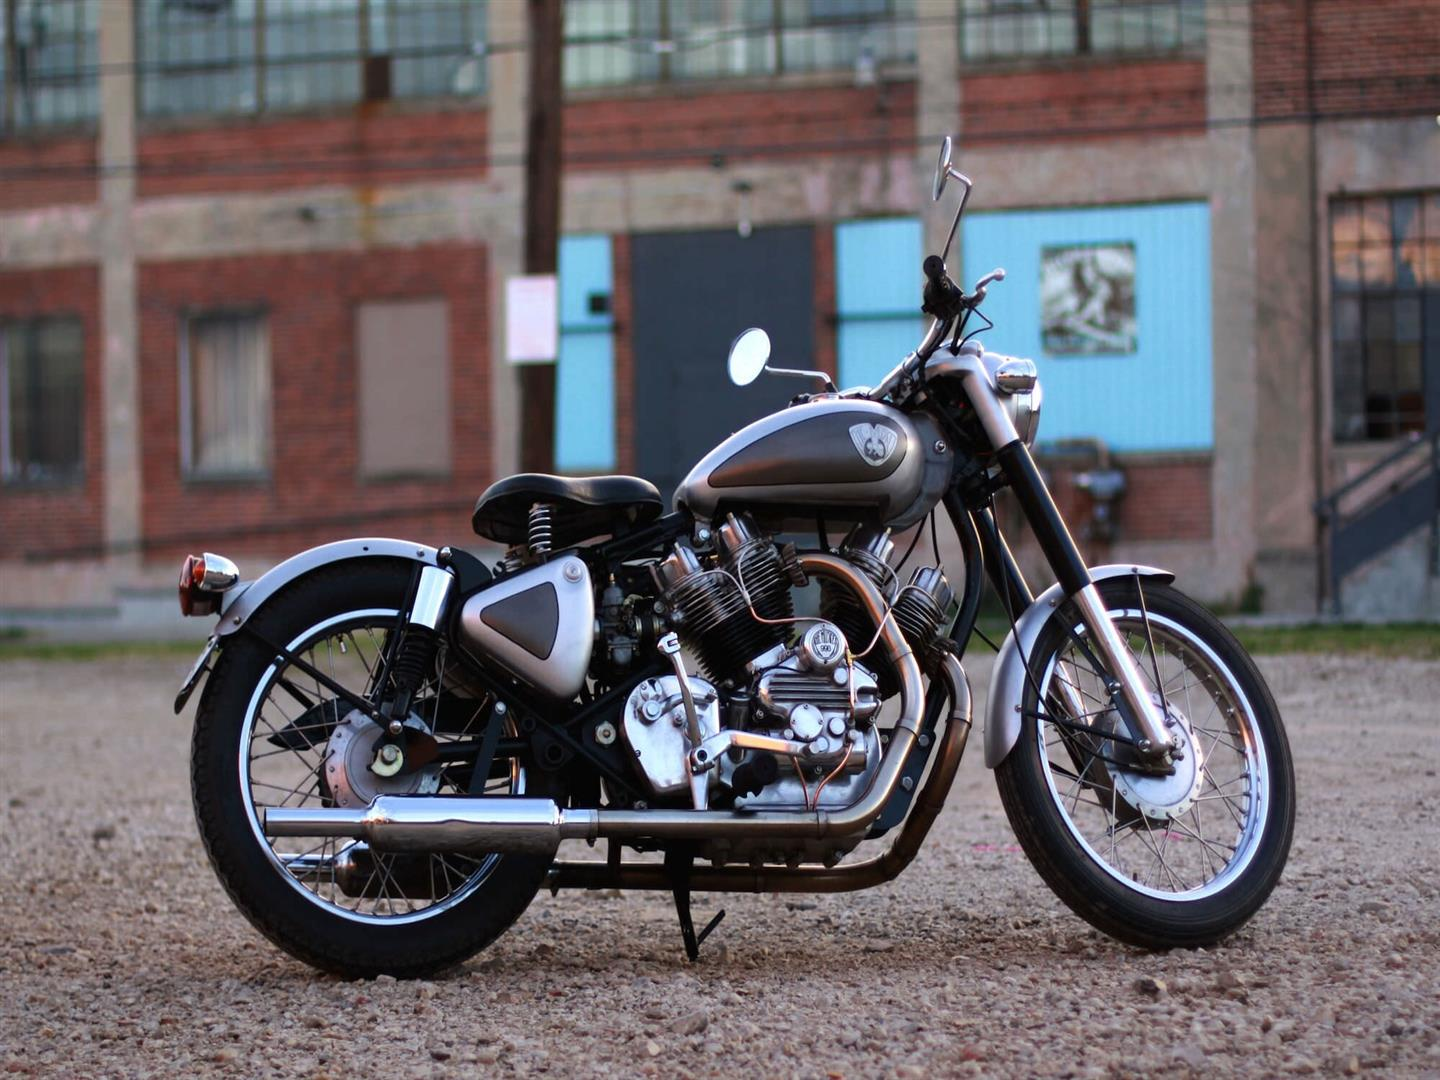 1440x1080 Royal Enfield Bullet Bike Photo